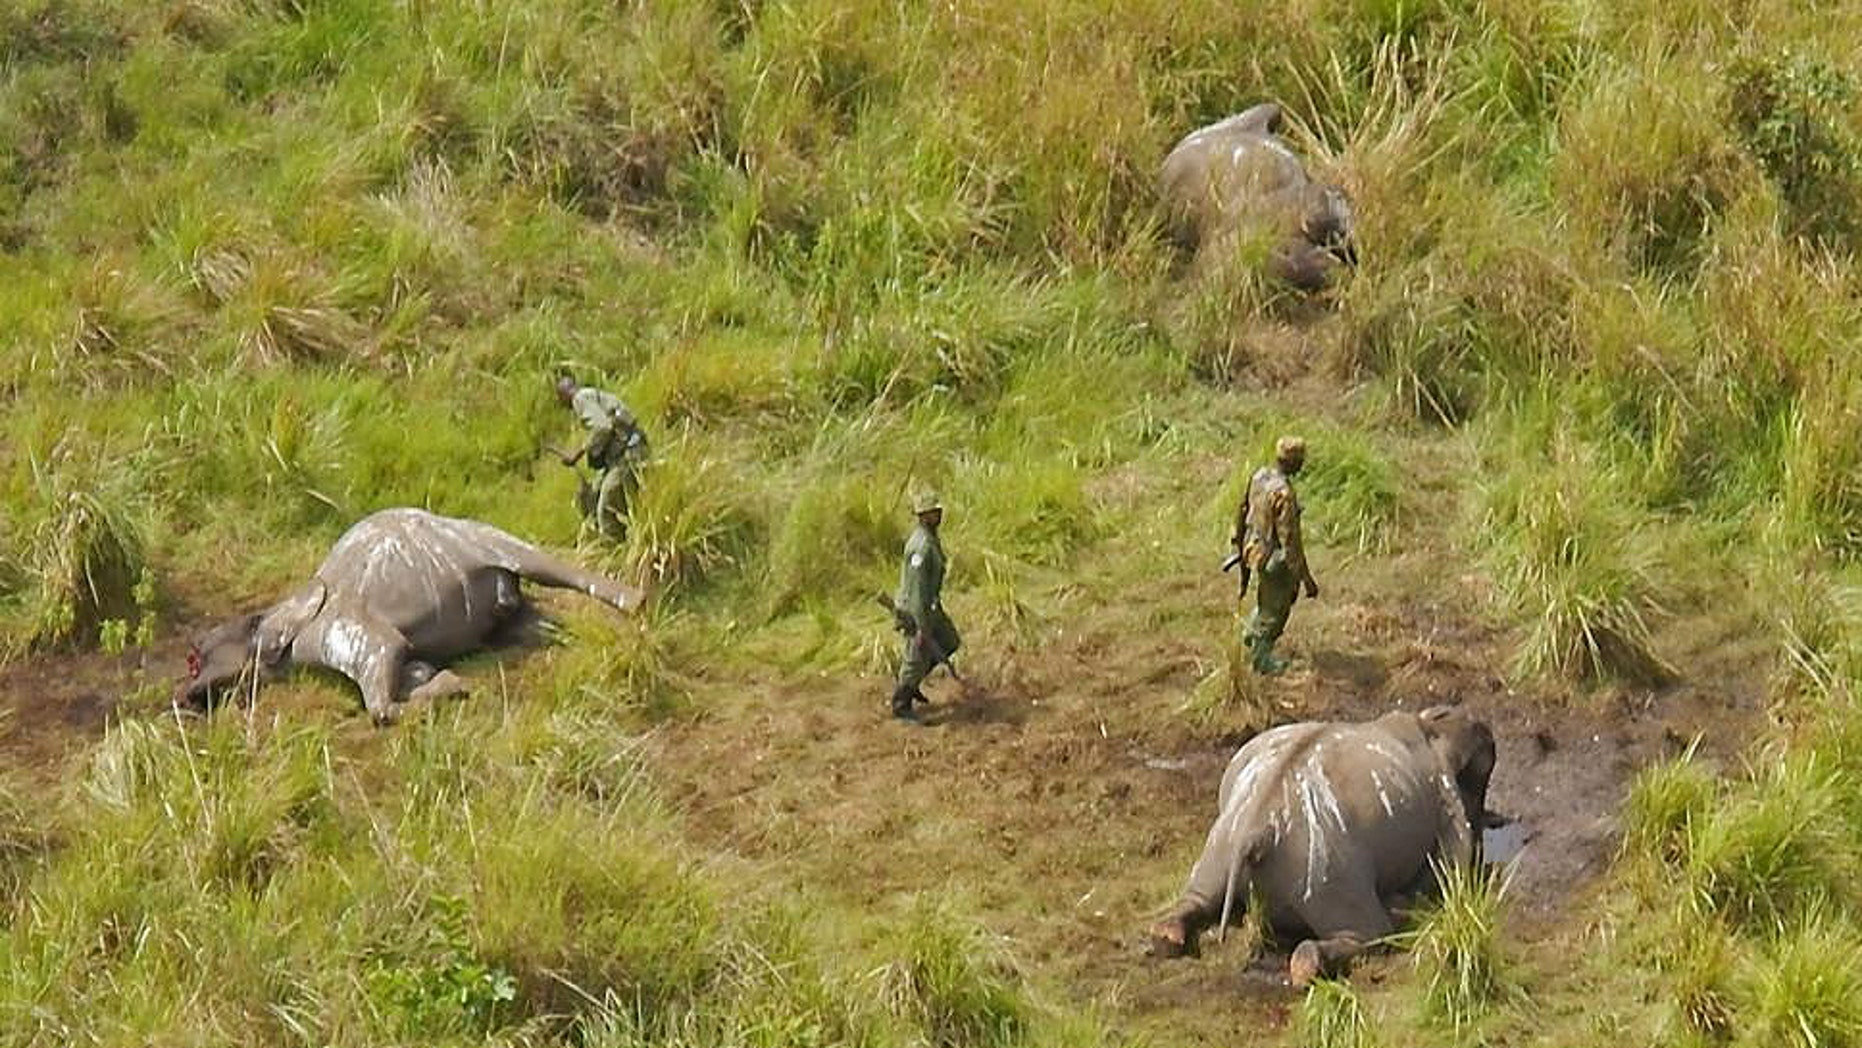 Park rangers stand near the remains of three elephants that were killed by unknown poachers in the Garamba National Park, located in the Democratic Republic of Congo. (AP Photo/African Parks)